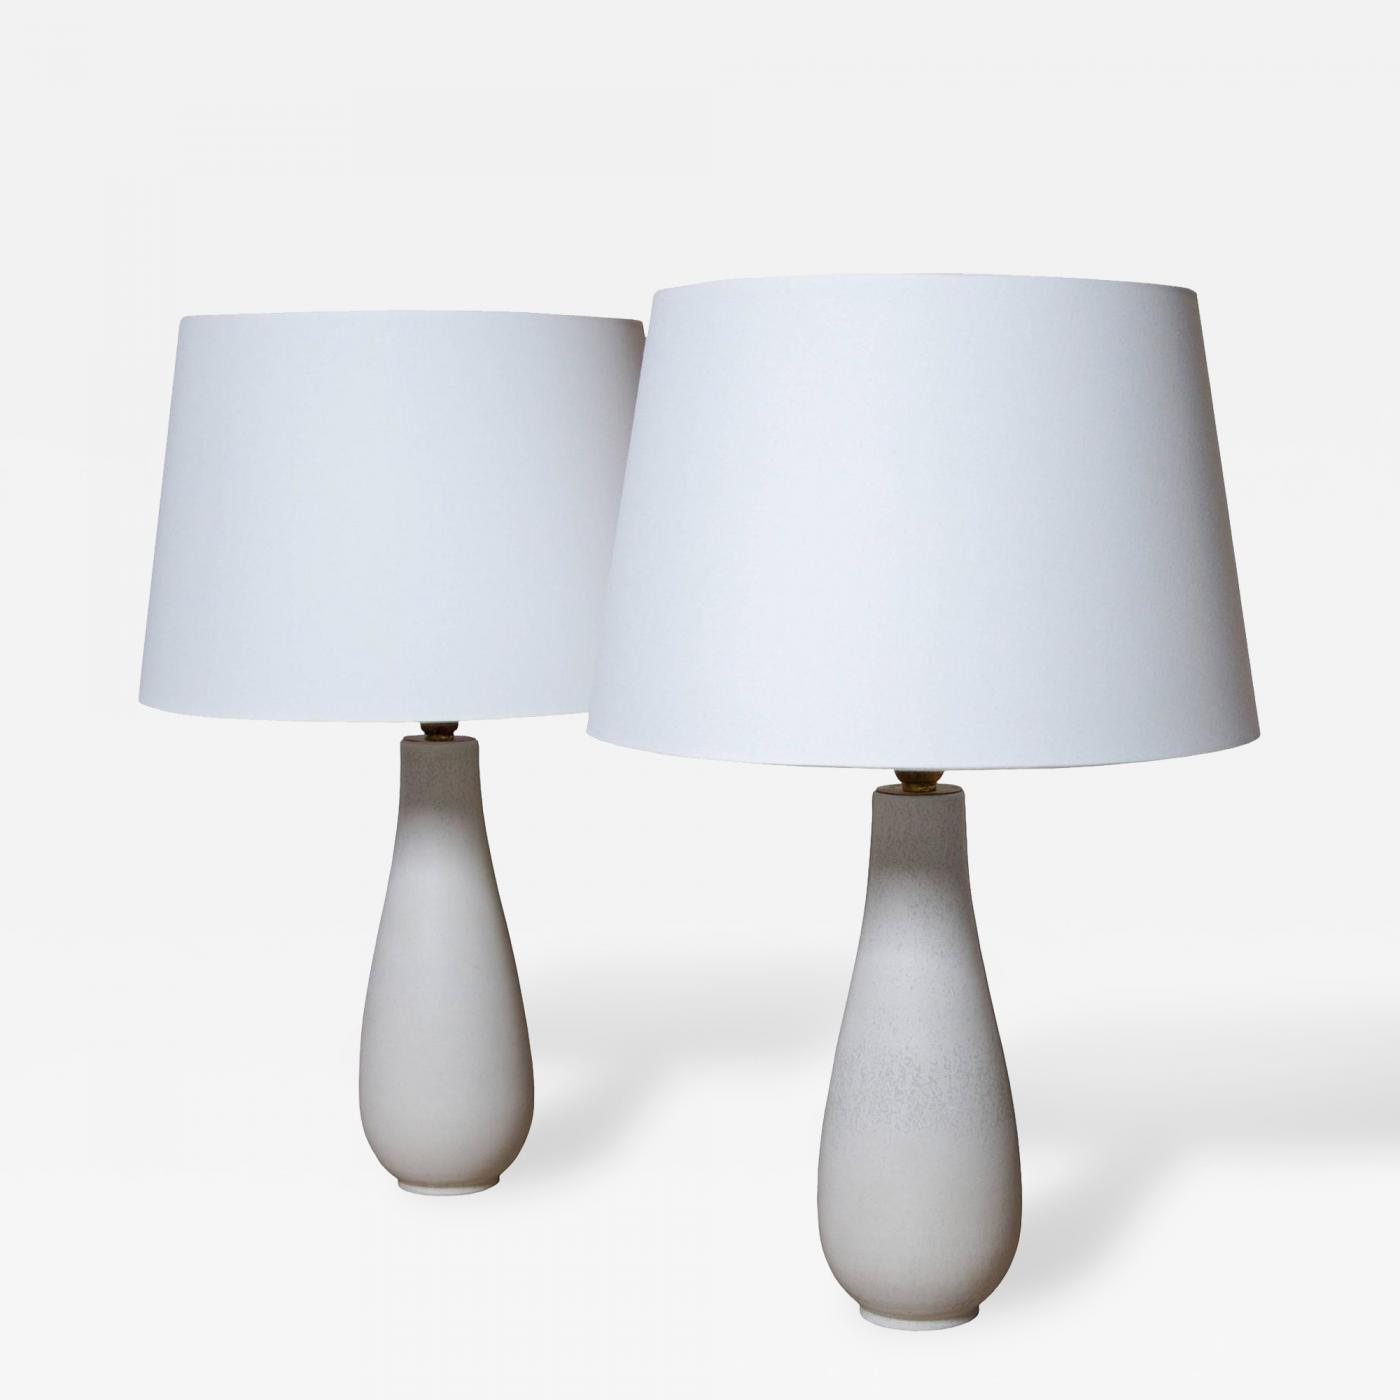 Gunnar nylund gunnar nylund pair of handmade ceramic table lamps listings furniture lighting table lamps geotapseo Choice Image